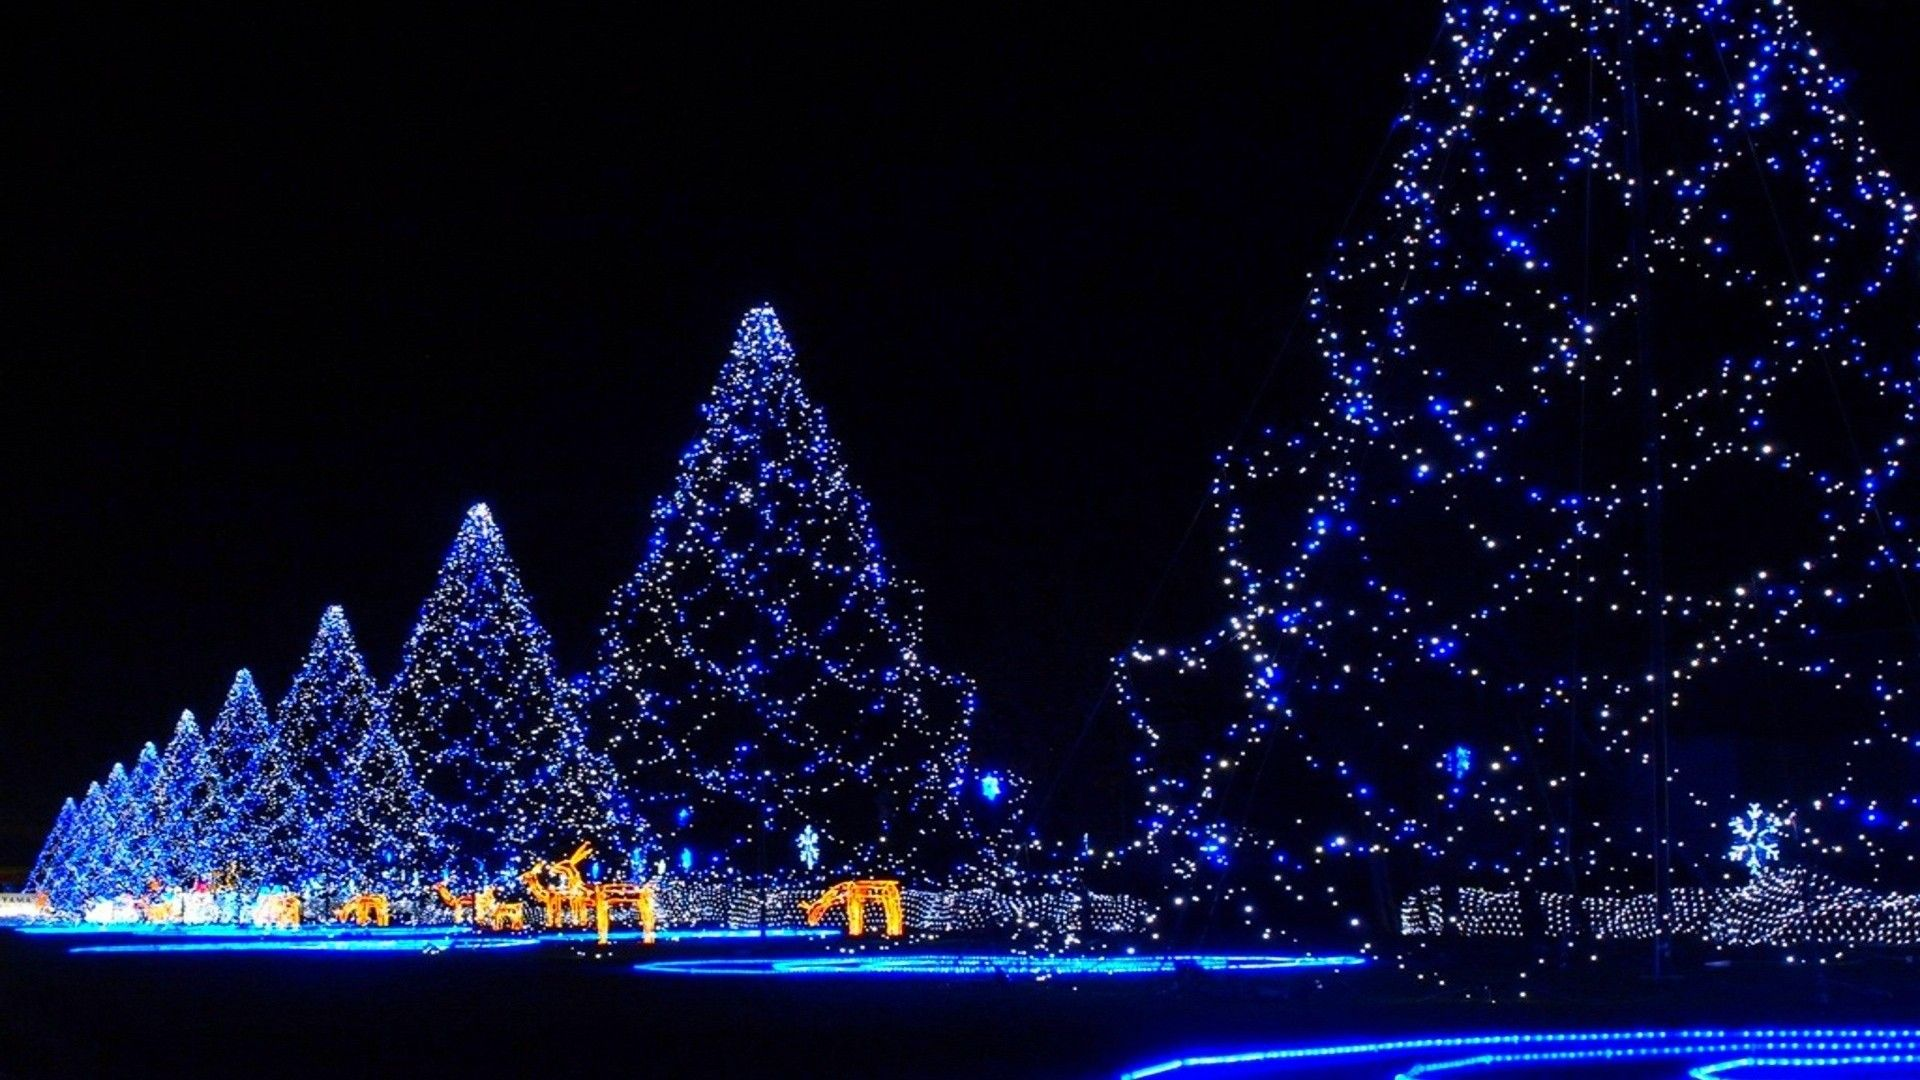 Japanese Winter Lights Wallpapers Top Free Japanese Winter Lights Backgrounds Wallpaperaccess